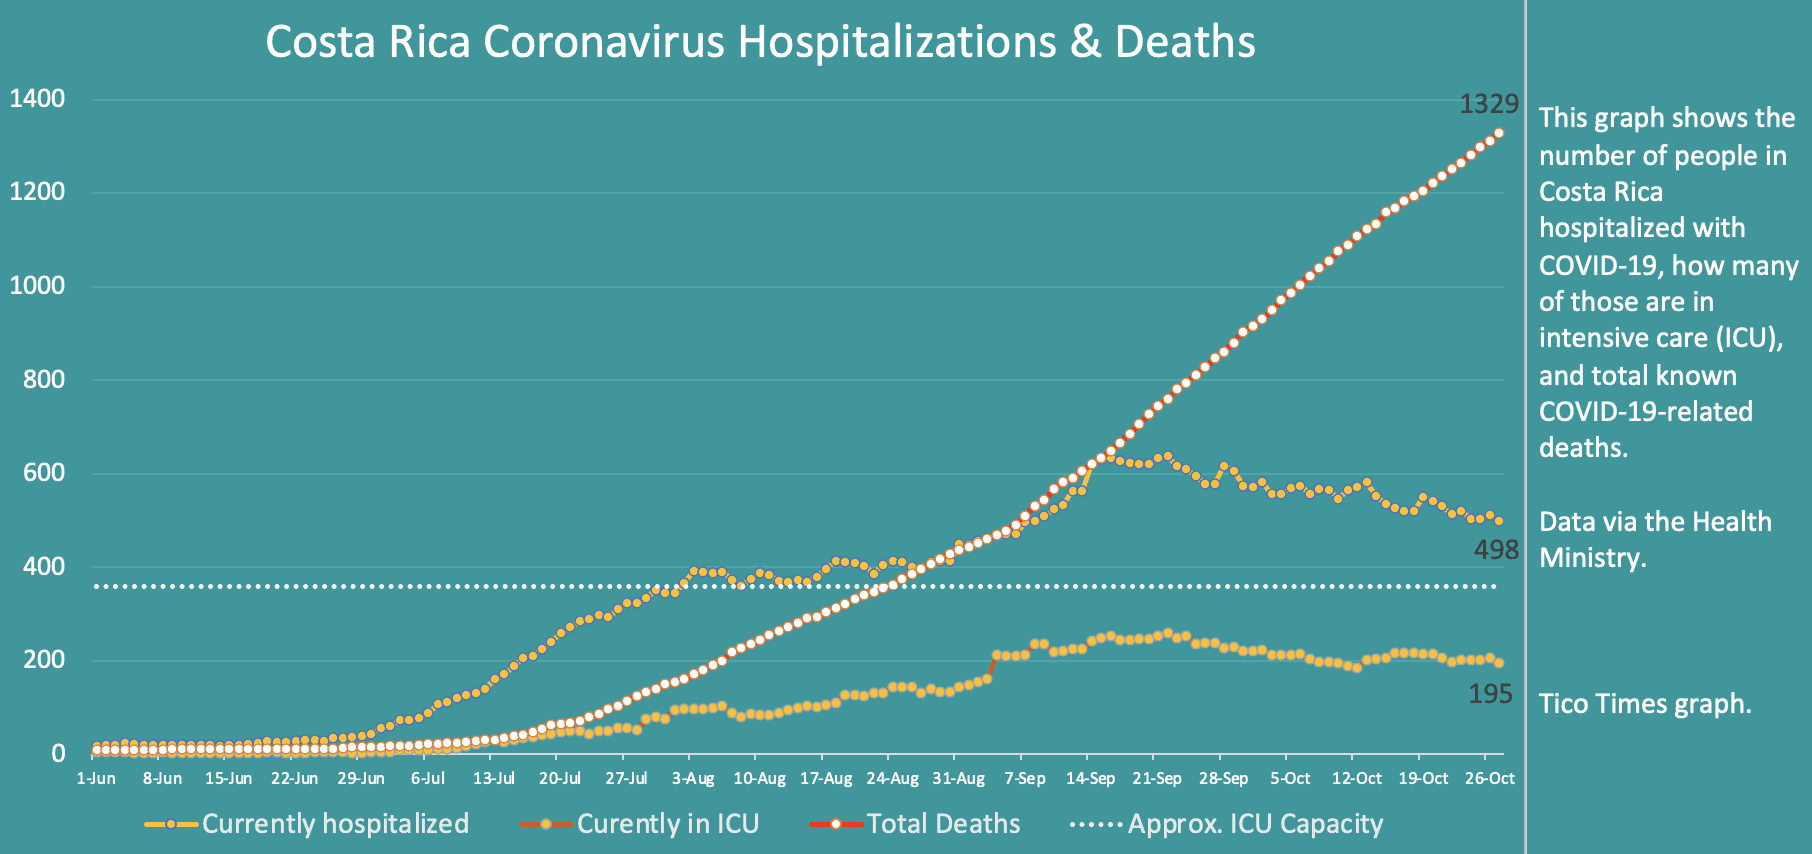 Costa Rica coronavirus hospitalizations and deaths on October 27, 2020